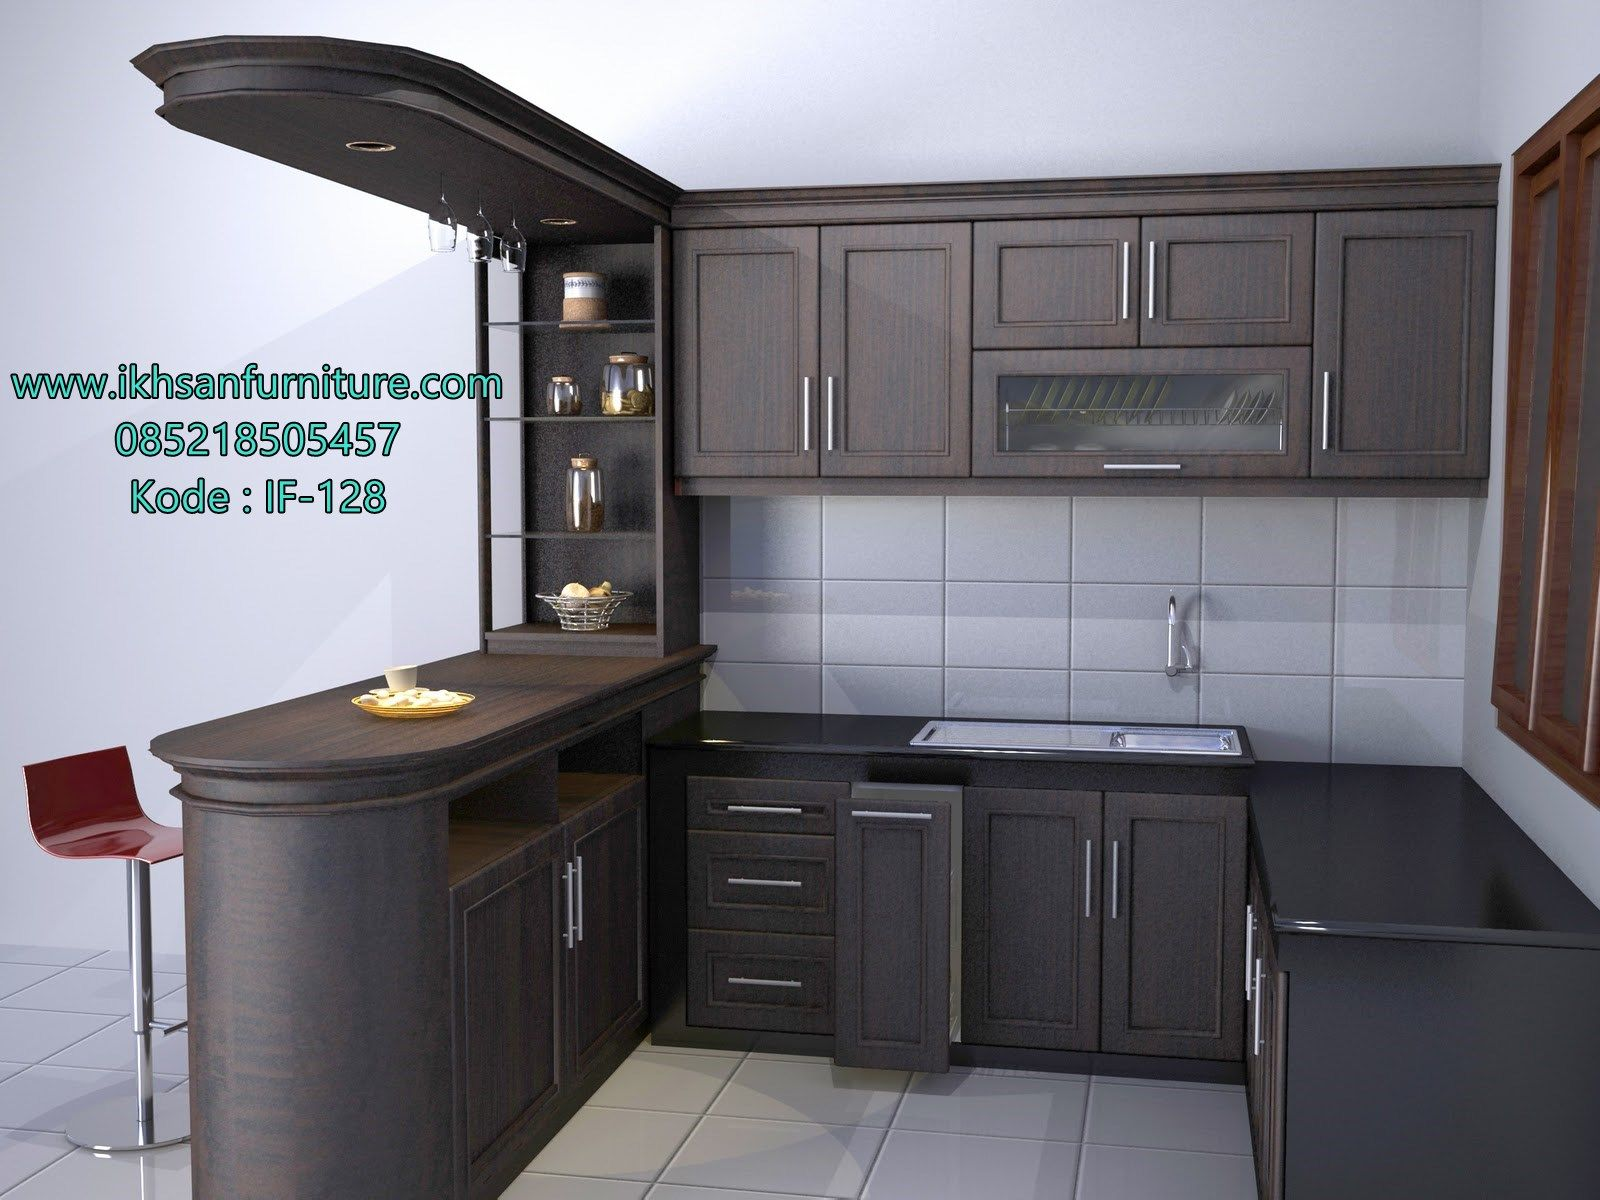 Jual kitchen set minimalis elegan model kitchen set for Harga paket kitchen set minimalis